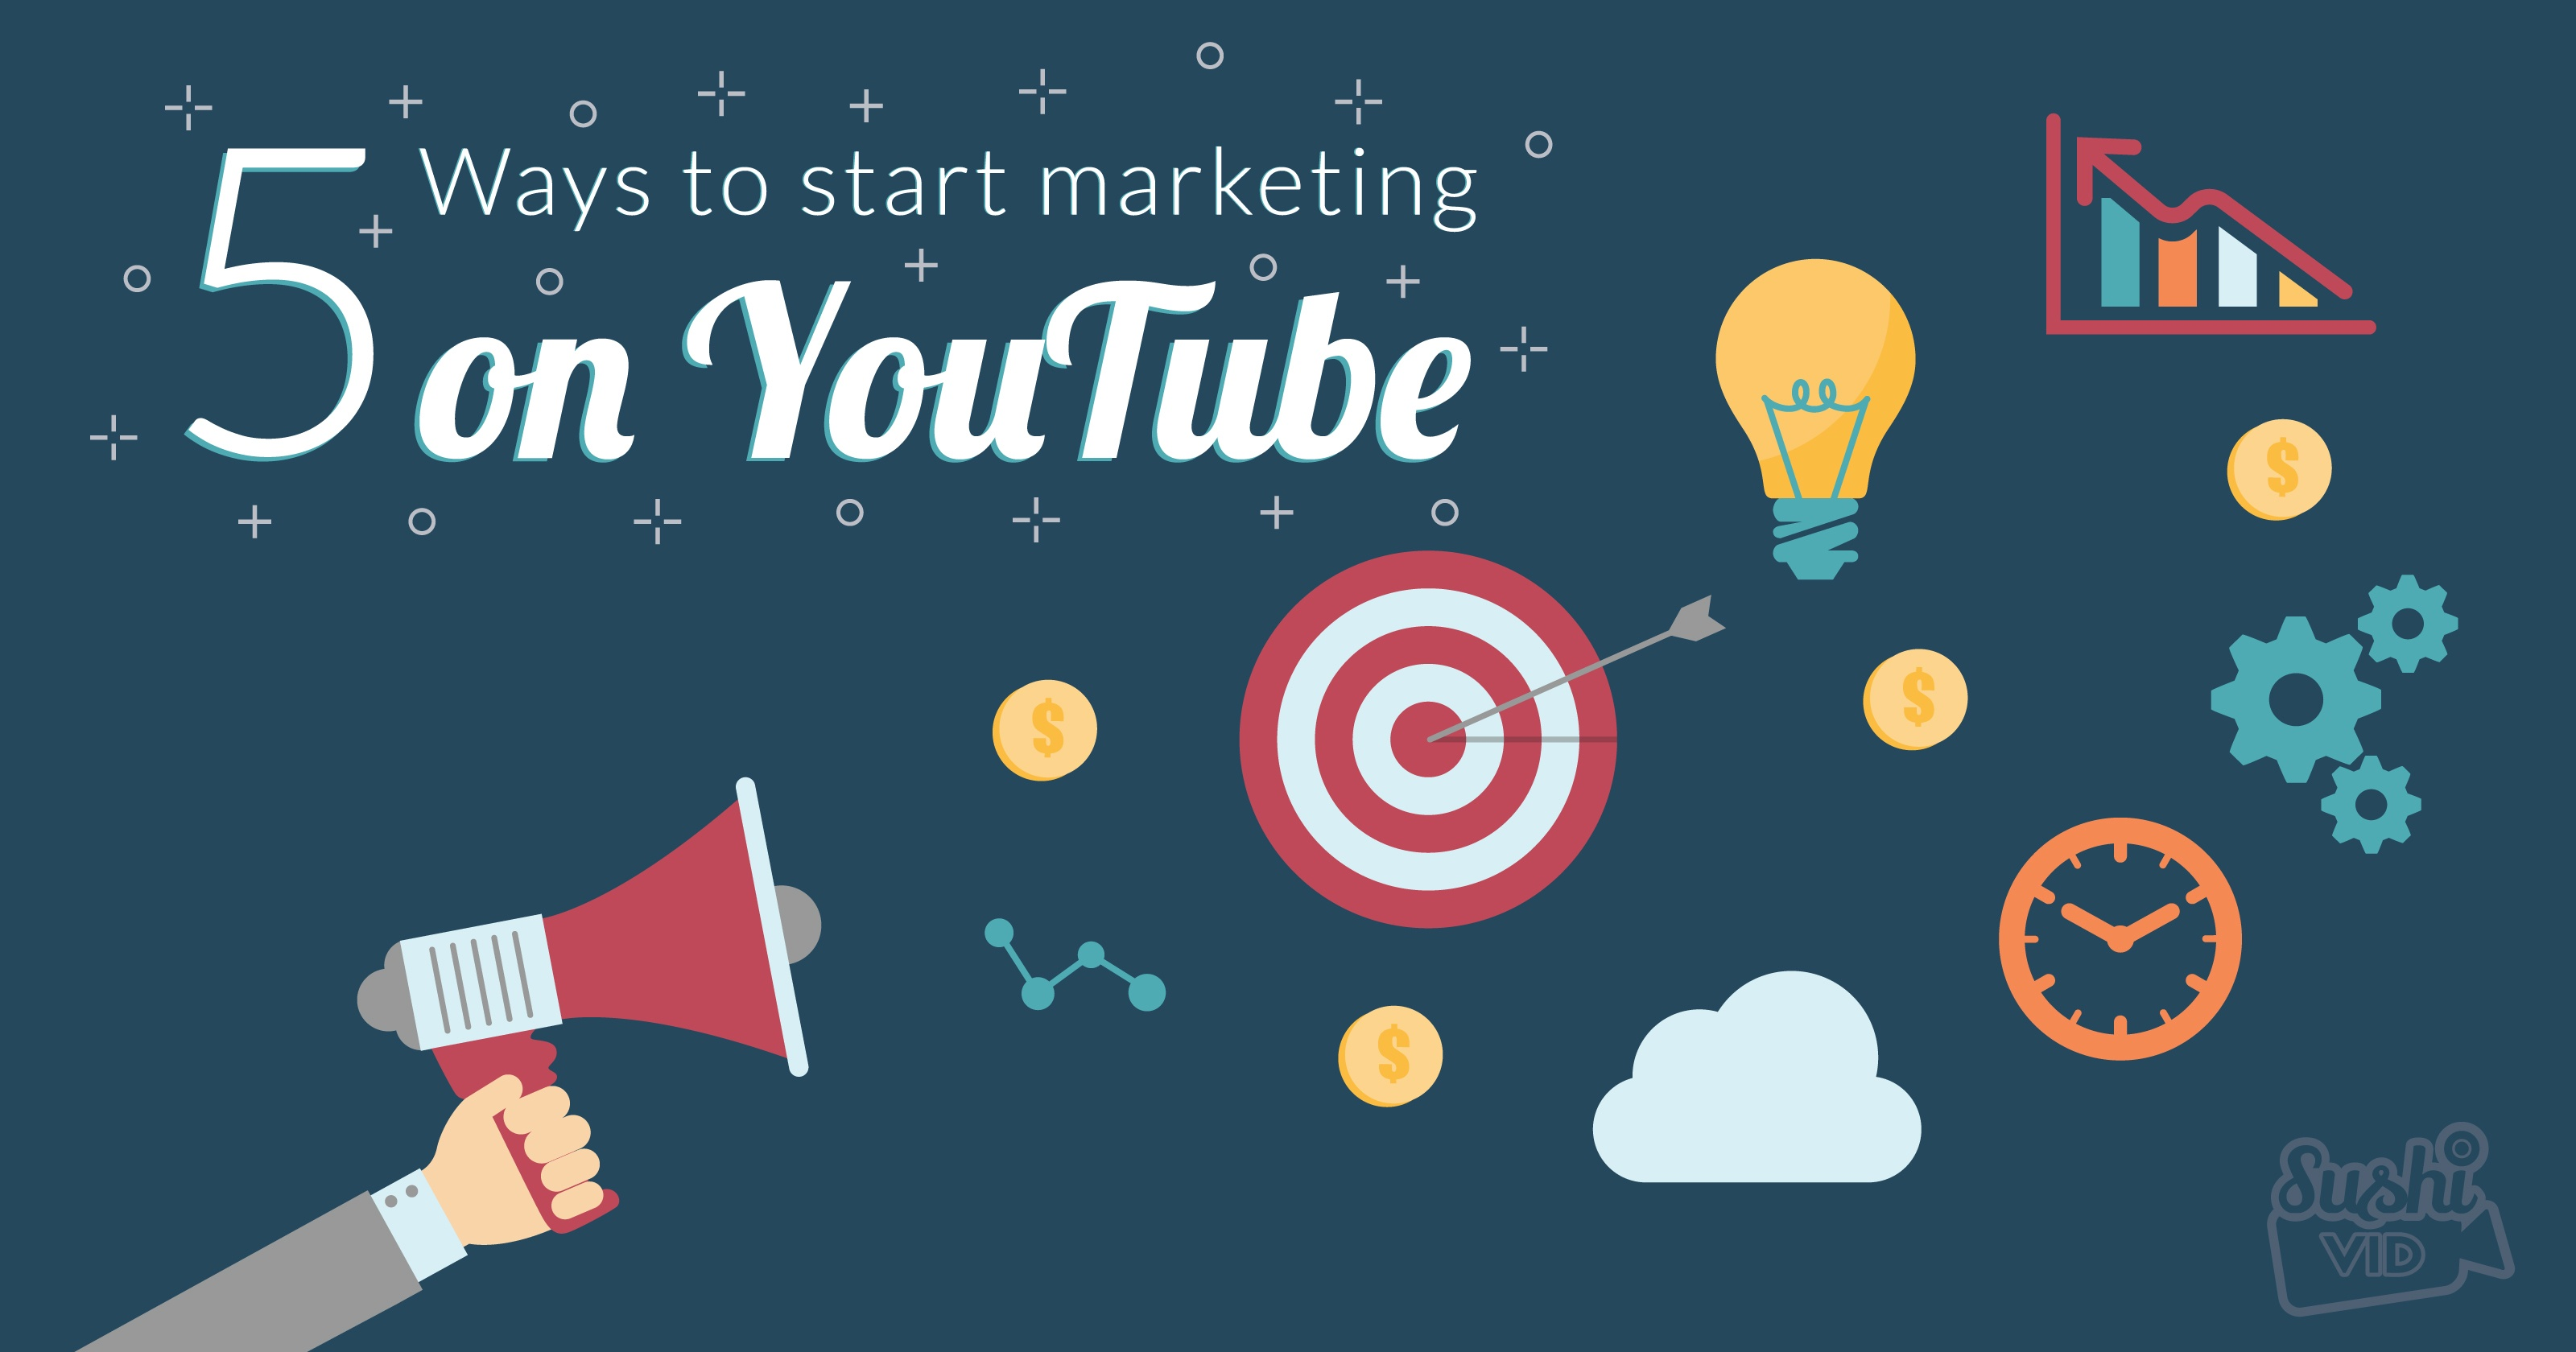 20151118 20  205 20ways 20to 20start 20marketing 20on 20youtube 20  20influencer 20marketing